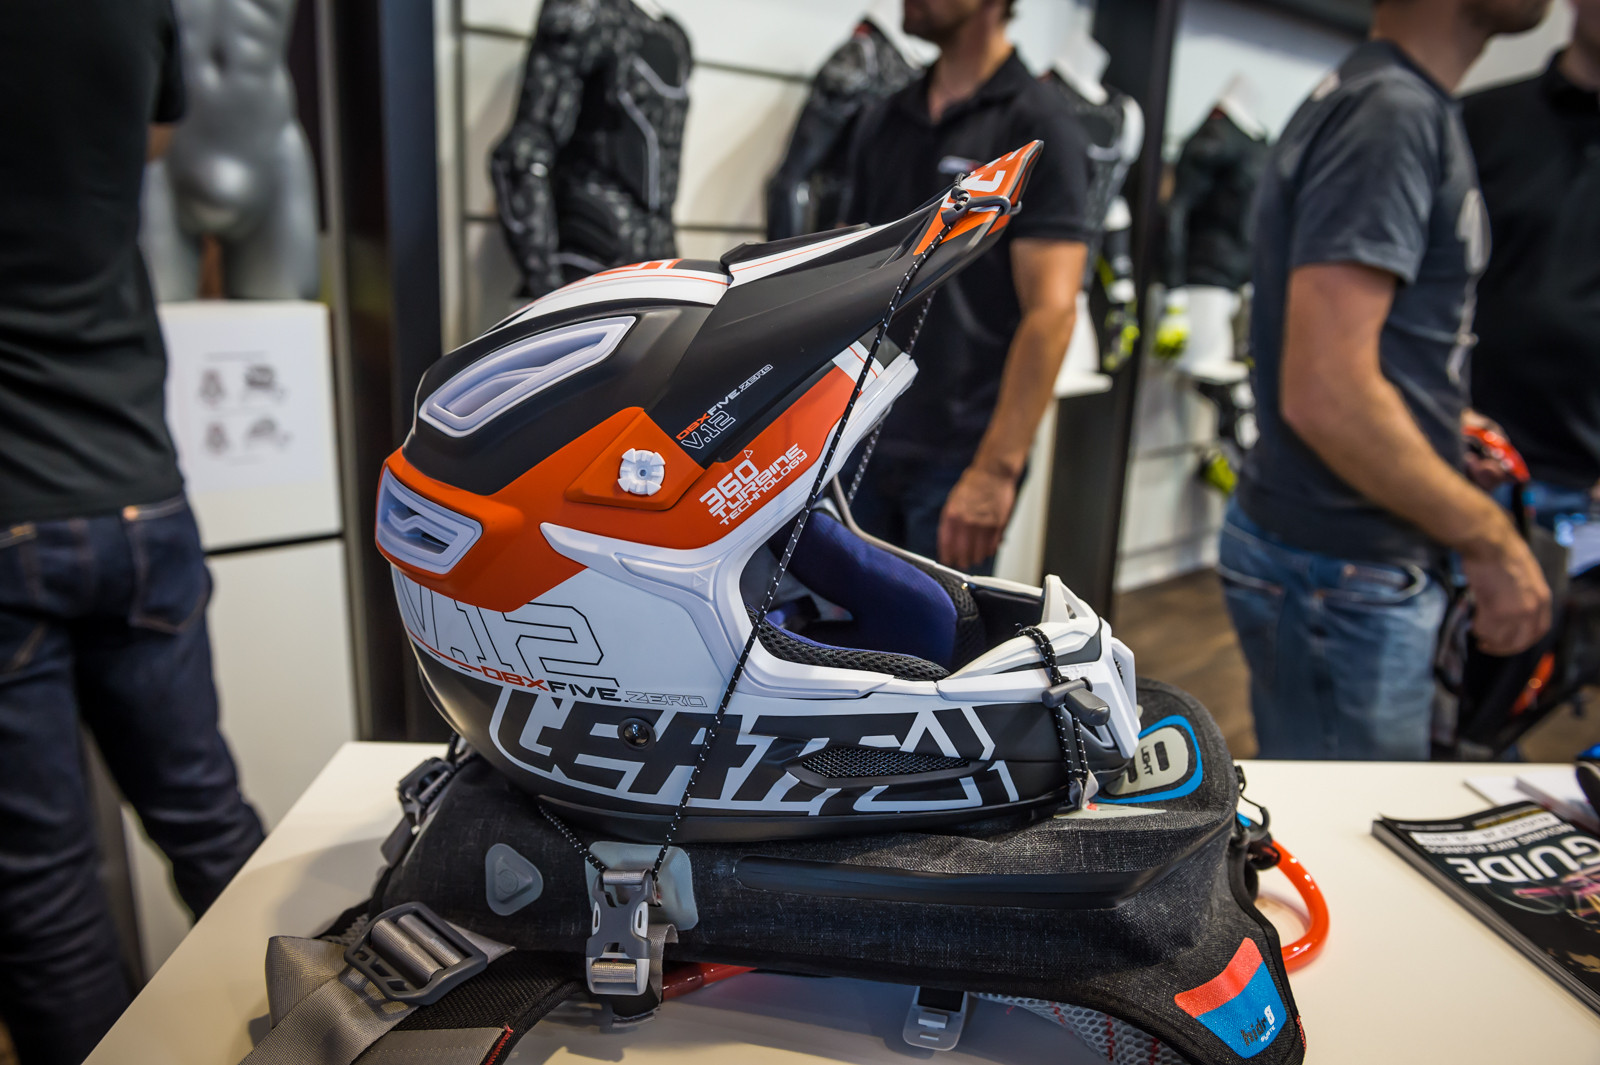 2016 Leatt Helmets, Protection, and Riding Packs - 2016 Mountain Bike Apparel & Protection at Eurobike - Mountain Biking Pictures - Vital MTB